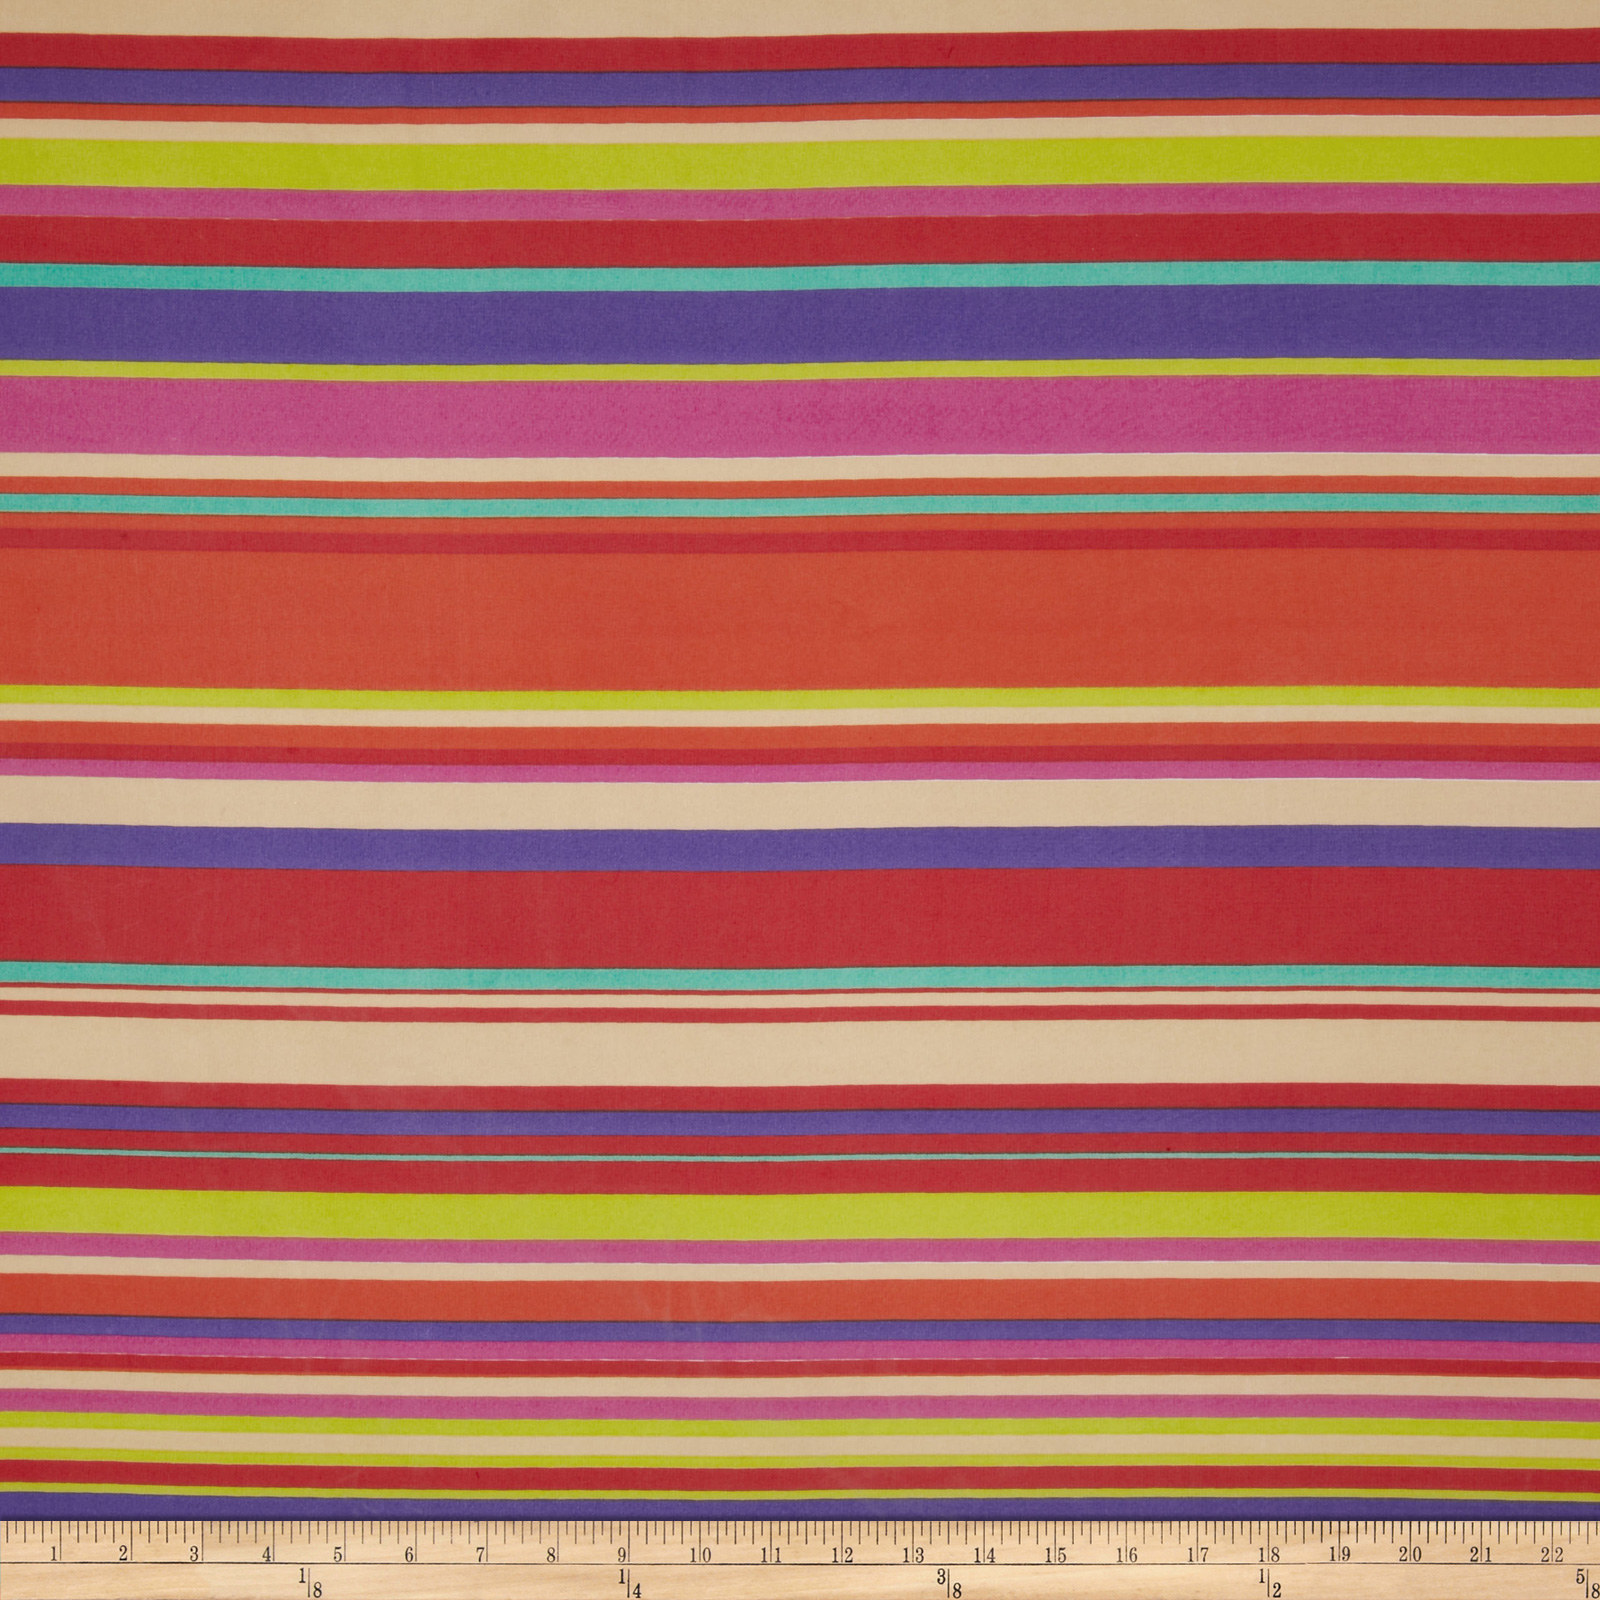 Chiffon Stripes Yellow/Fuchsia Fabric